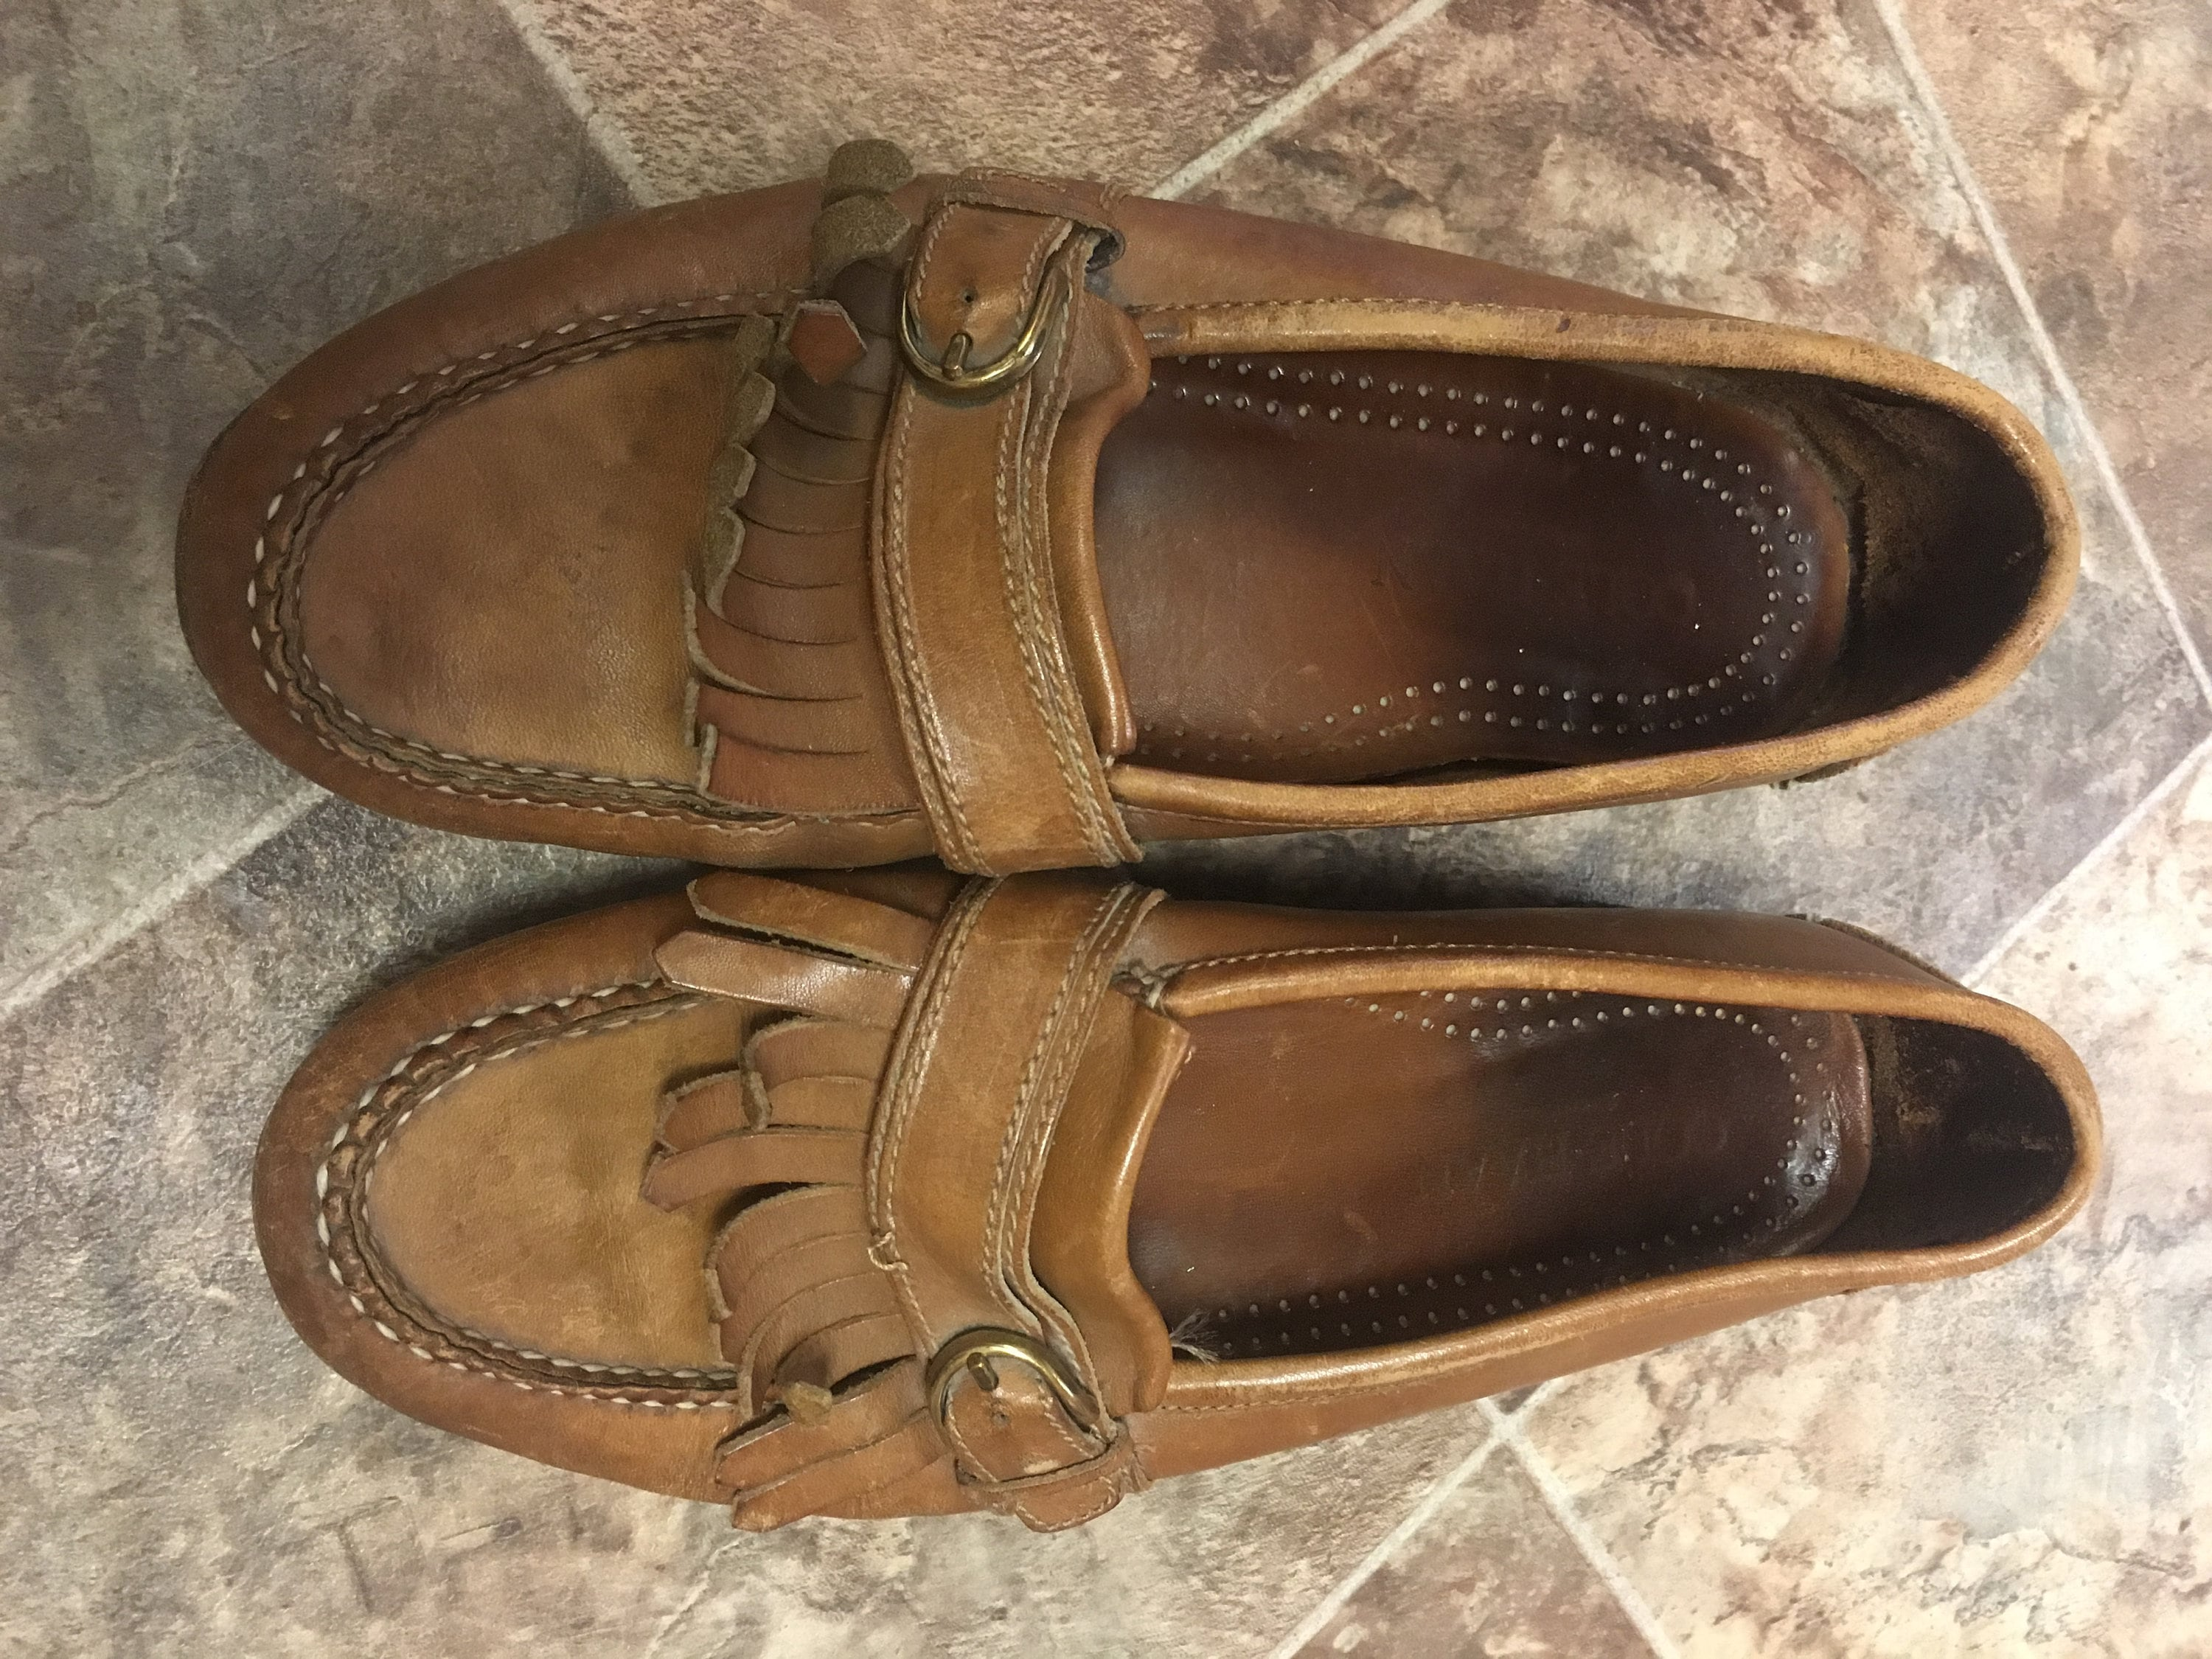 c438754c36bc3 90's Leather Slip On Loafers Size 10